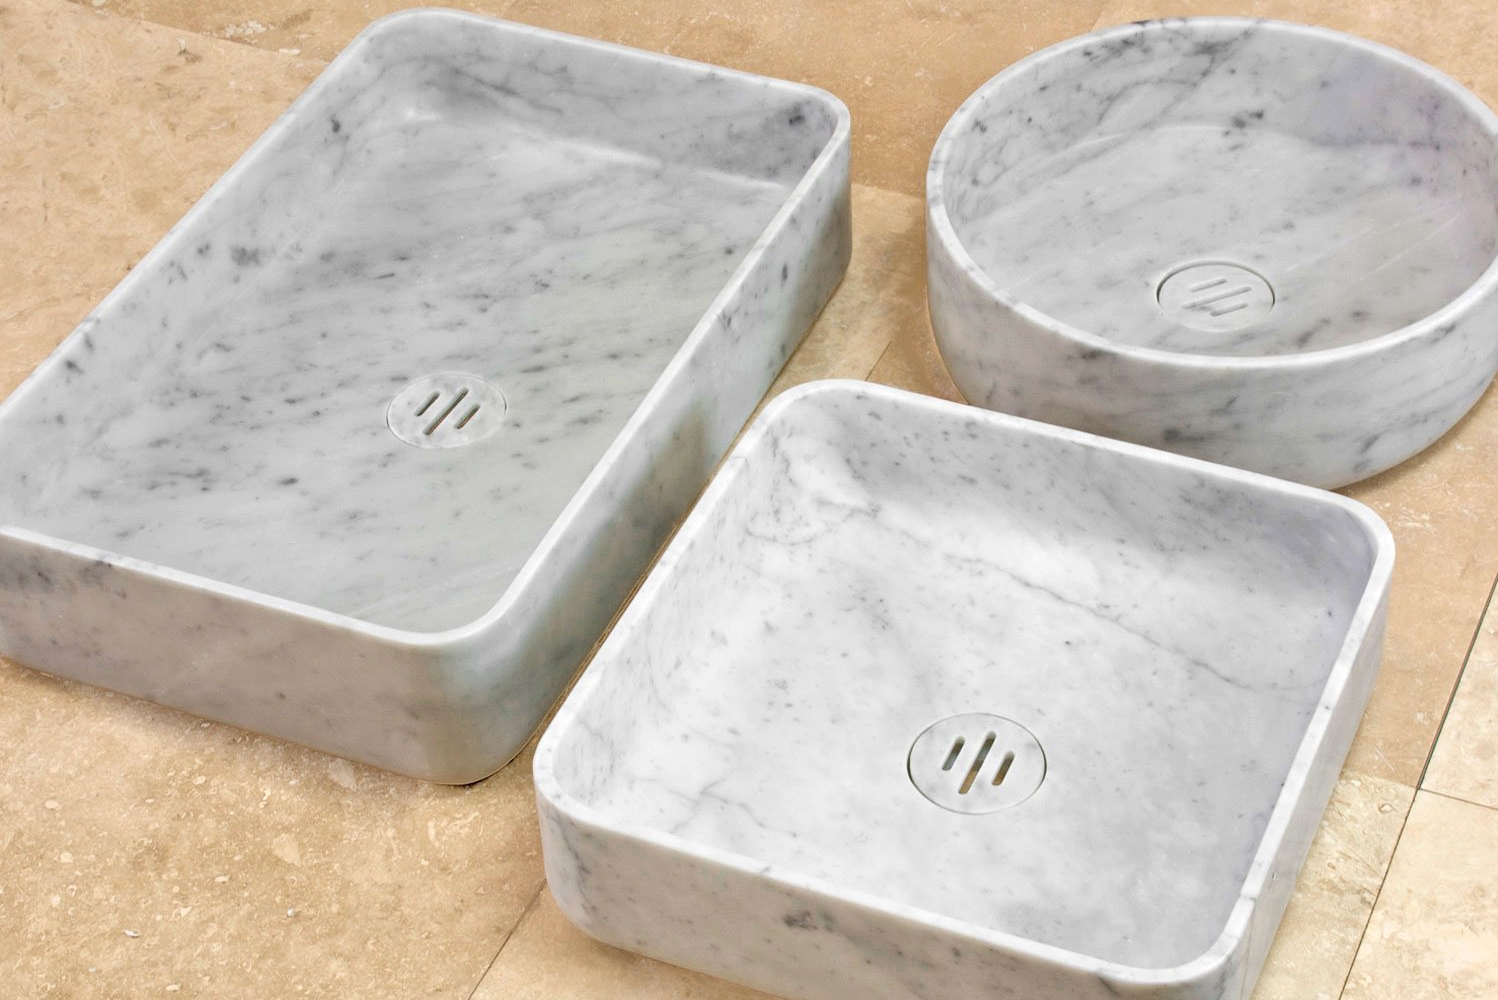 The sinks are available in round, square and rectangular shapes.